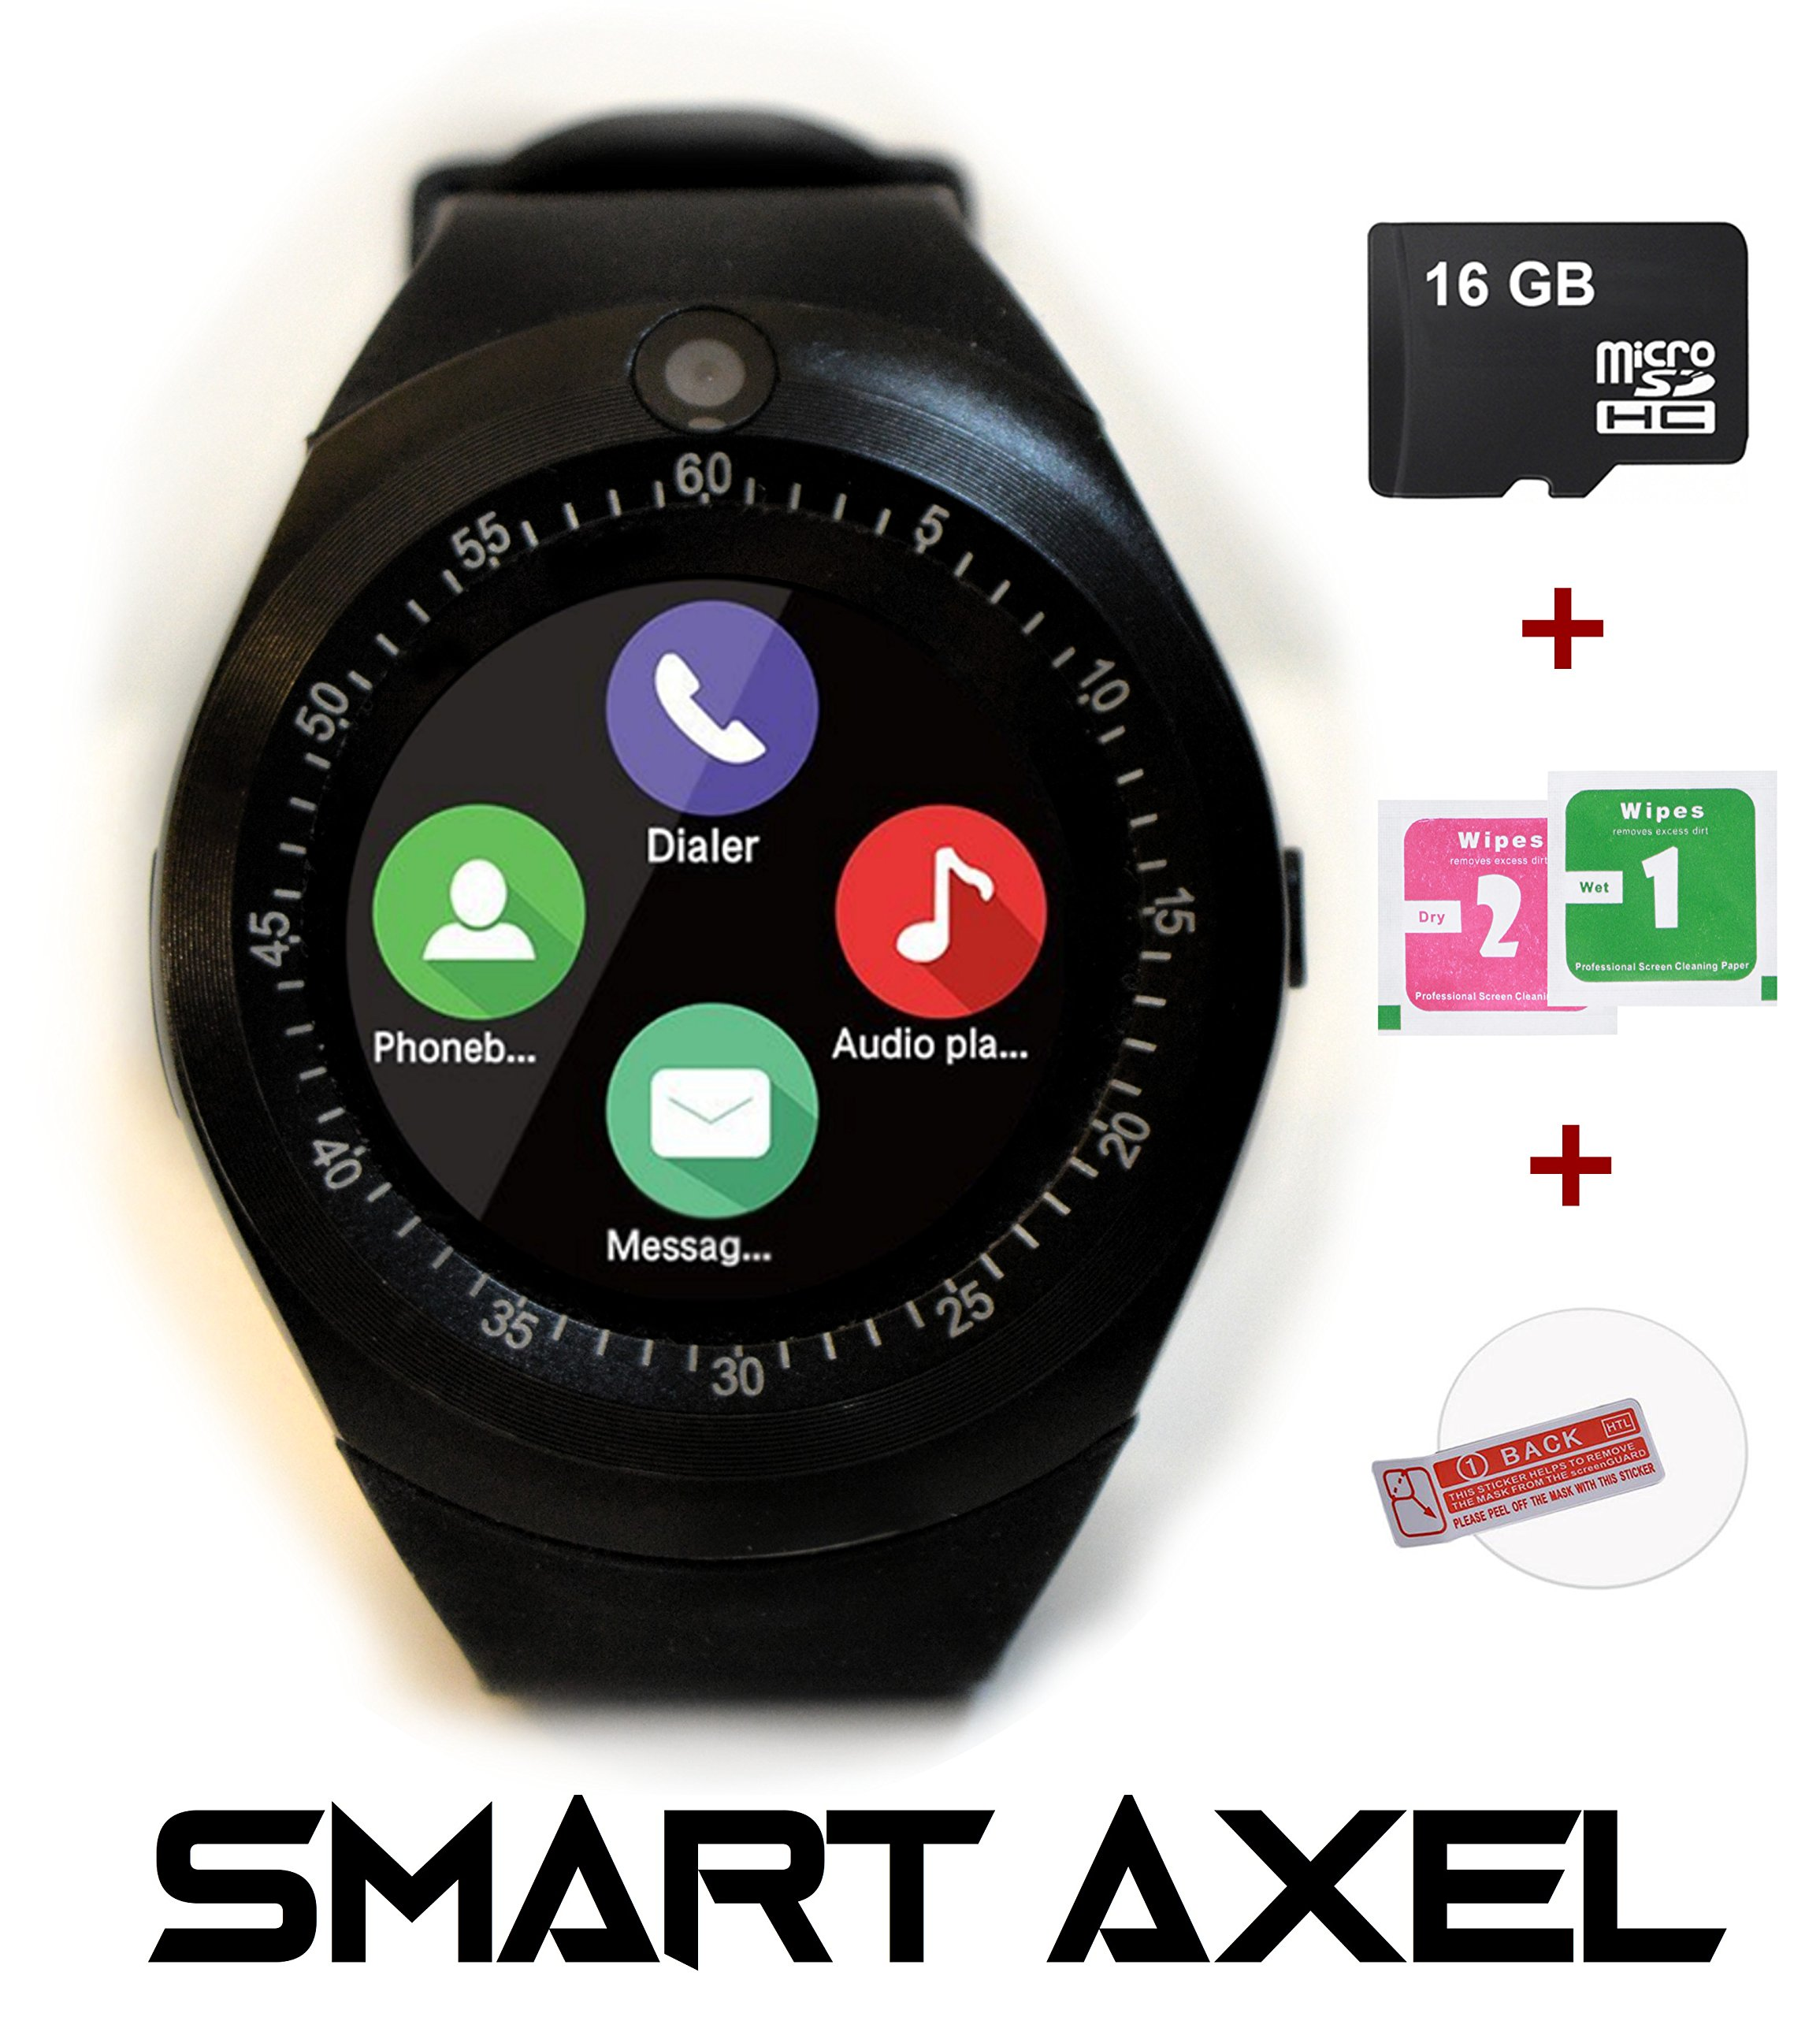 Smart Axel Luna Bluetooth Smartwatch with Built in Camera and Touch Screen Cell Phone SIM Card Slot designed for Android phones for Men Women Kids Boys Girls + 16GB SD memory card (Black)